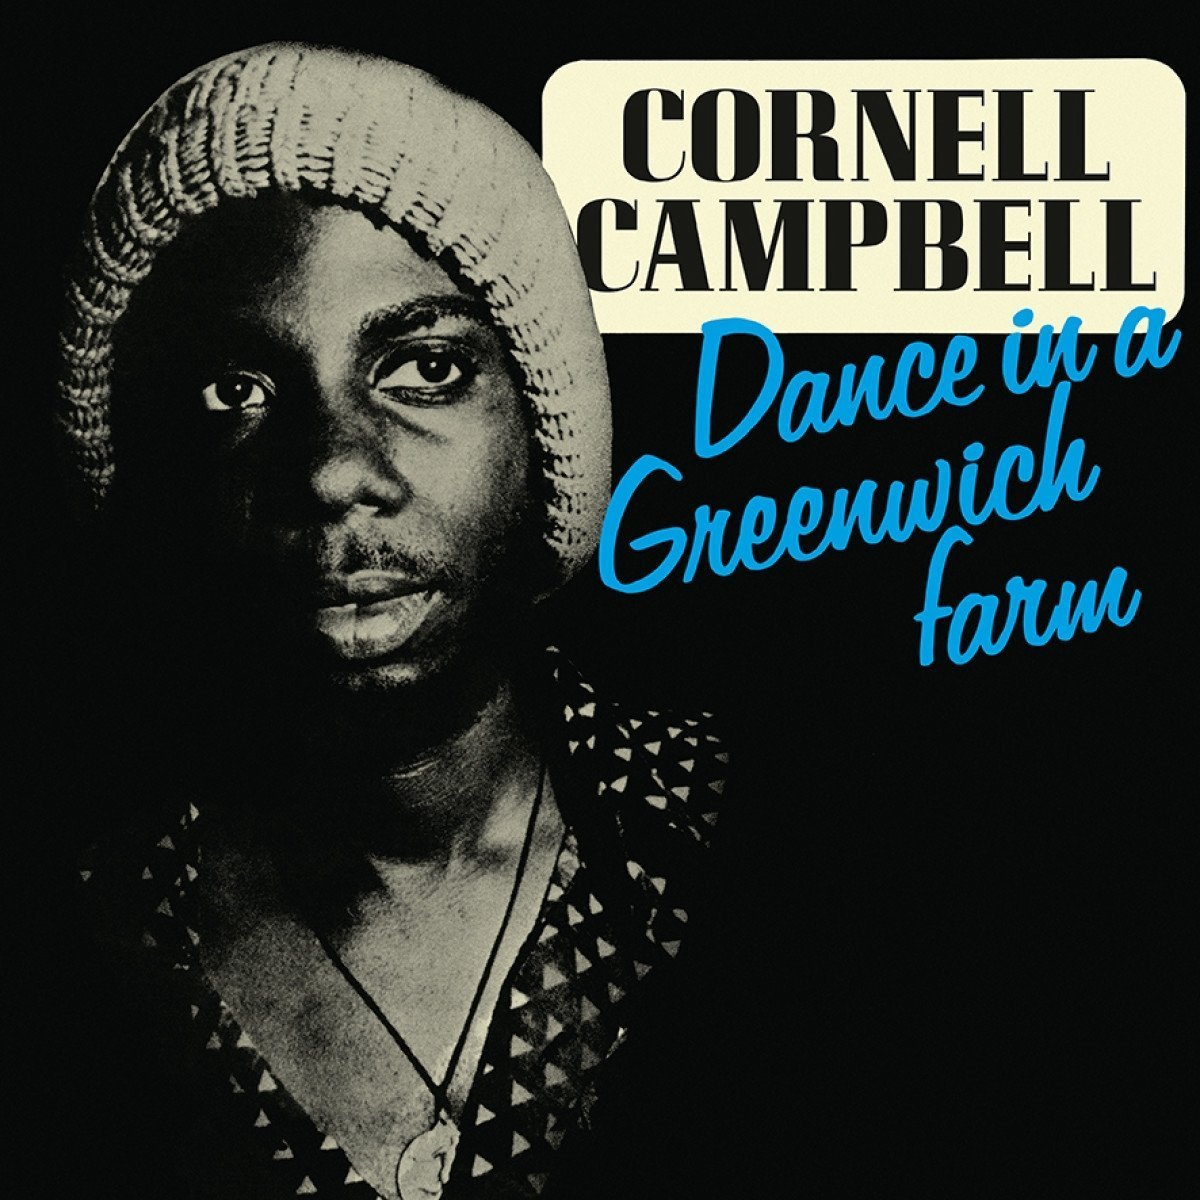 Dance In A Greenwich Farm by Cornell Campbell image